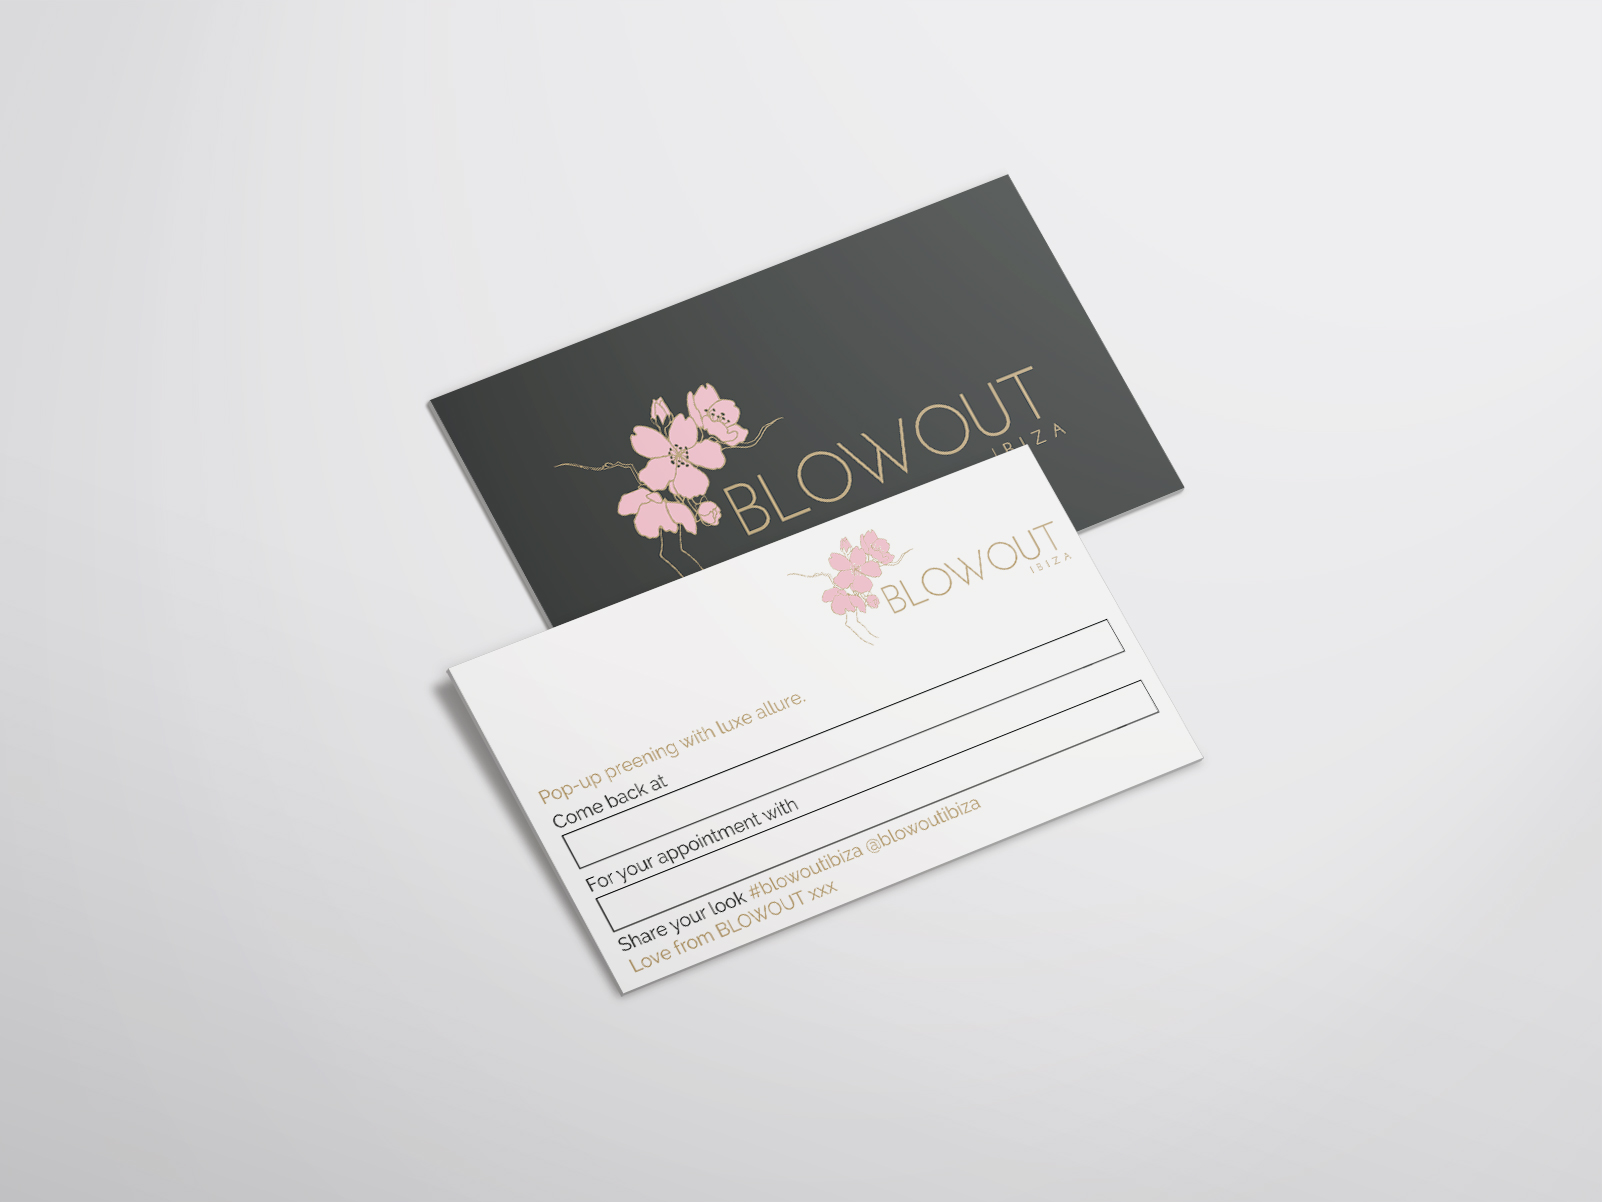 blowout-ibiza-touch-studio-appointmentcard